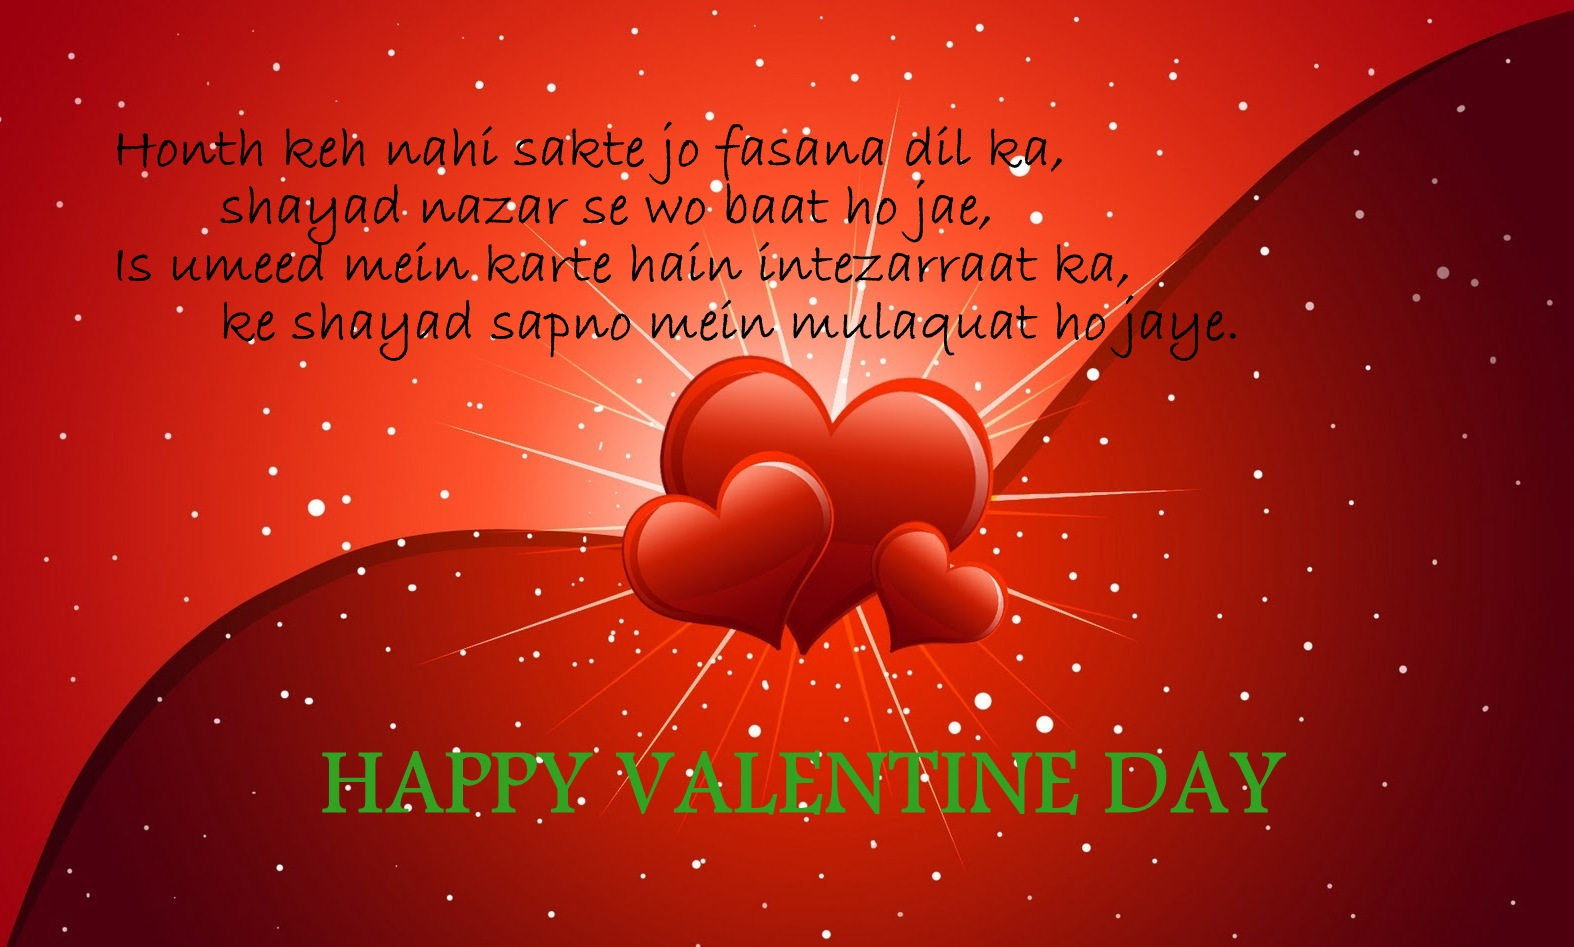 14 Feb Valentine Day Message In Hindi HDbdpd9